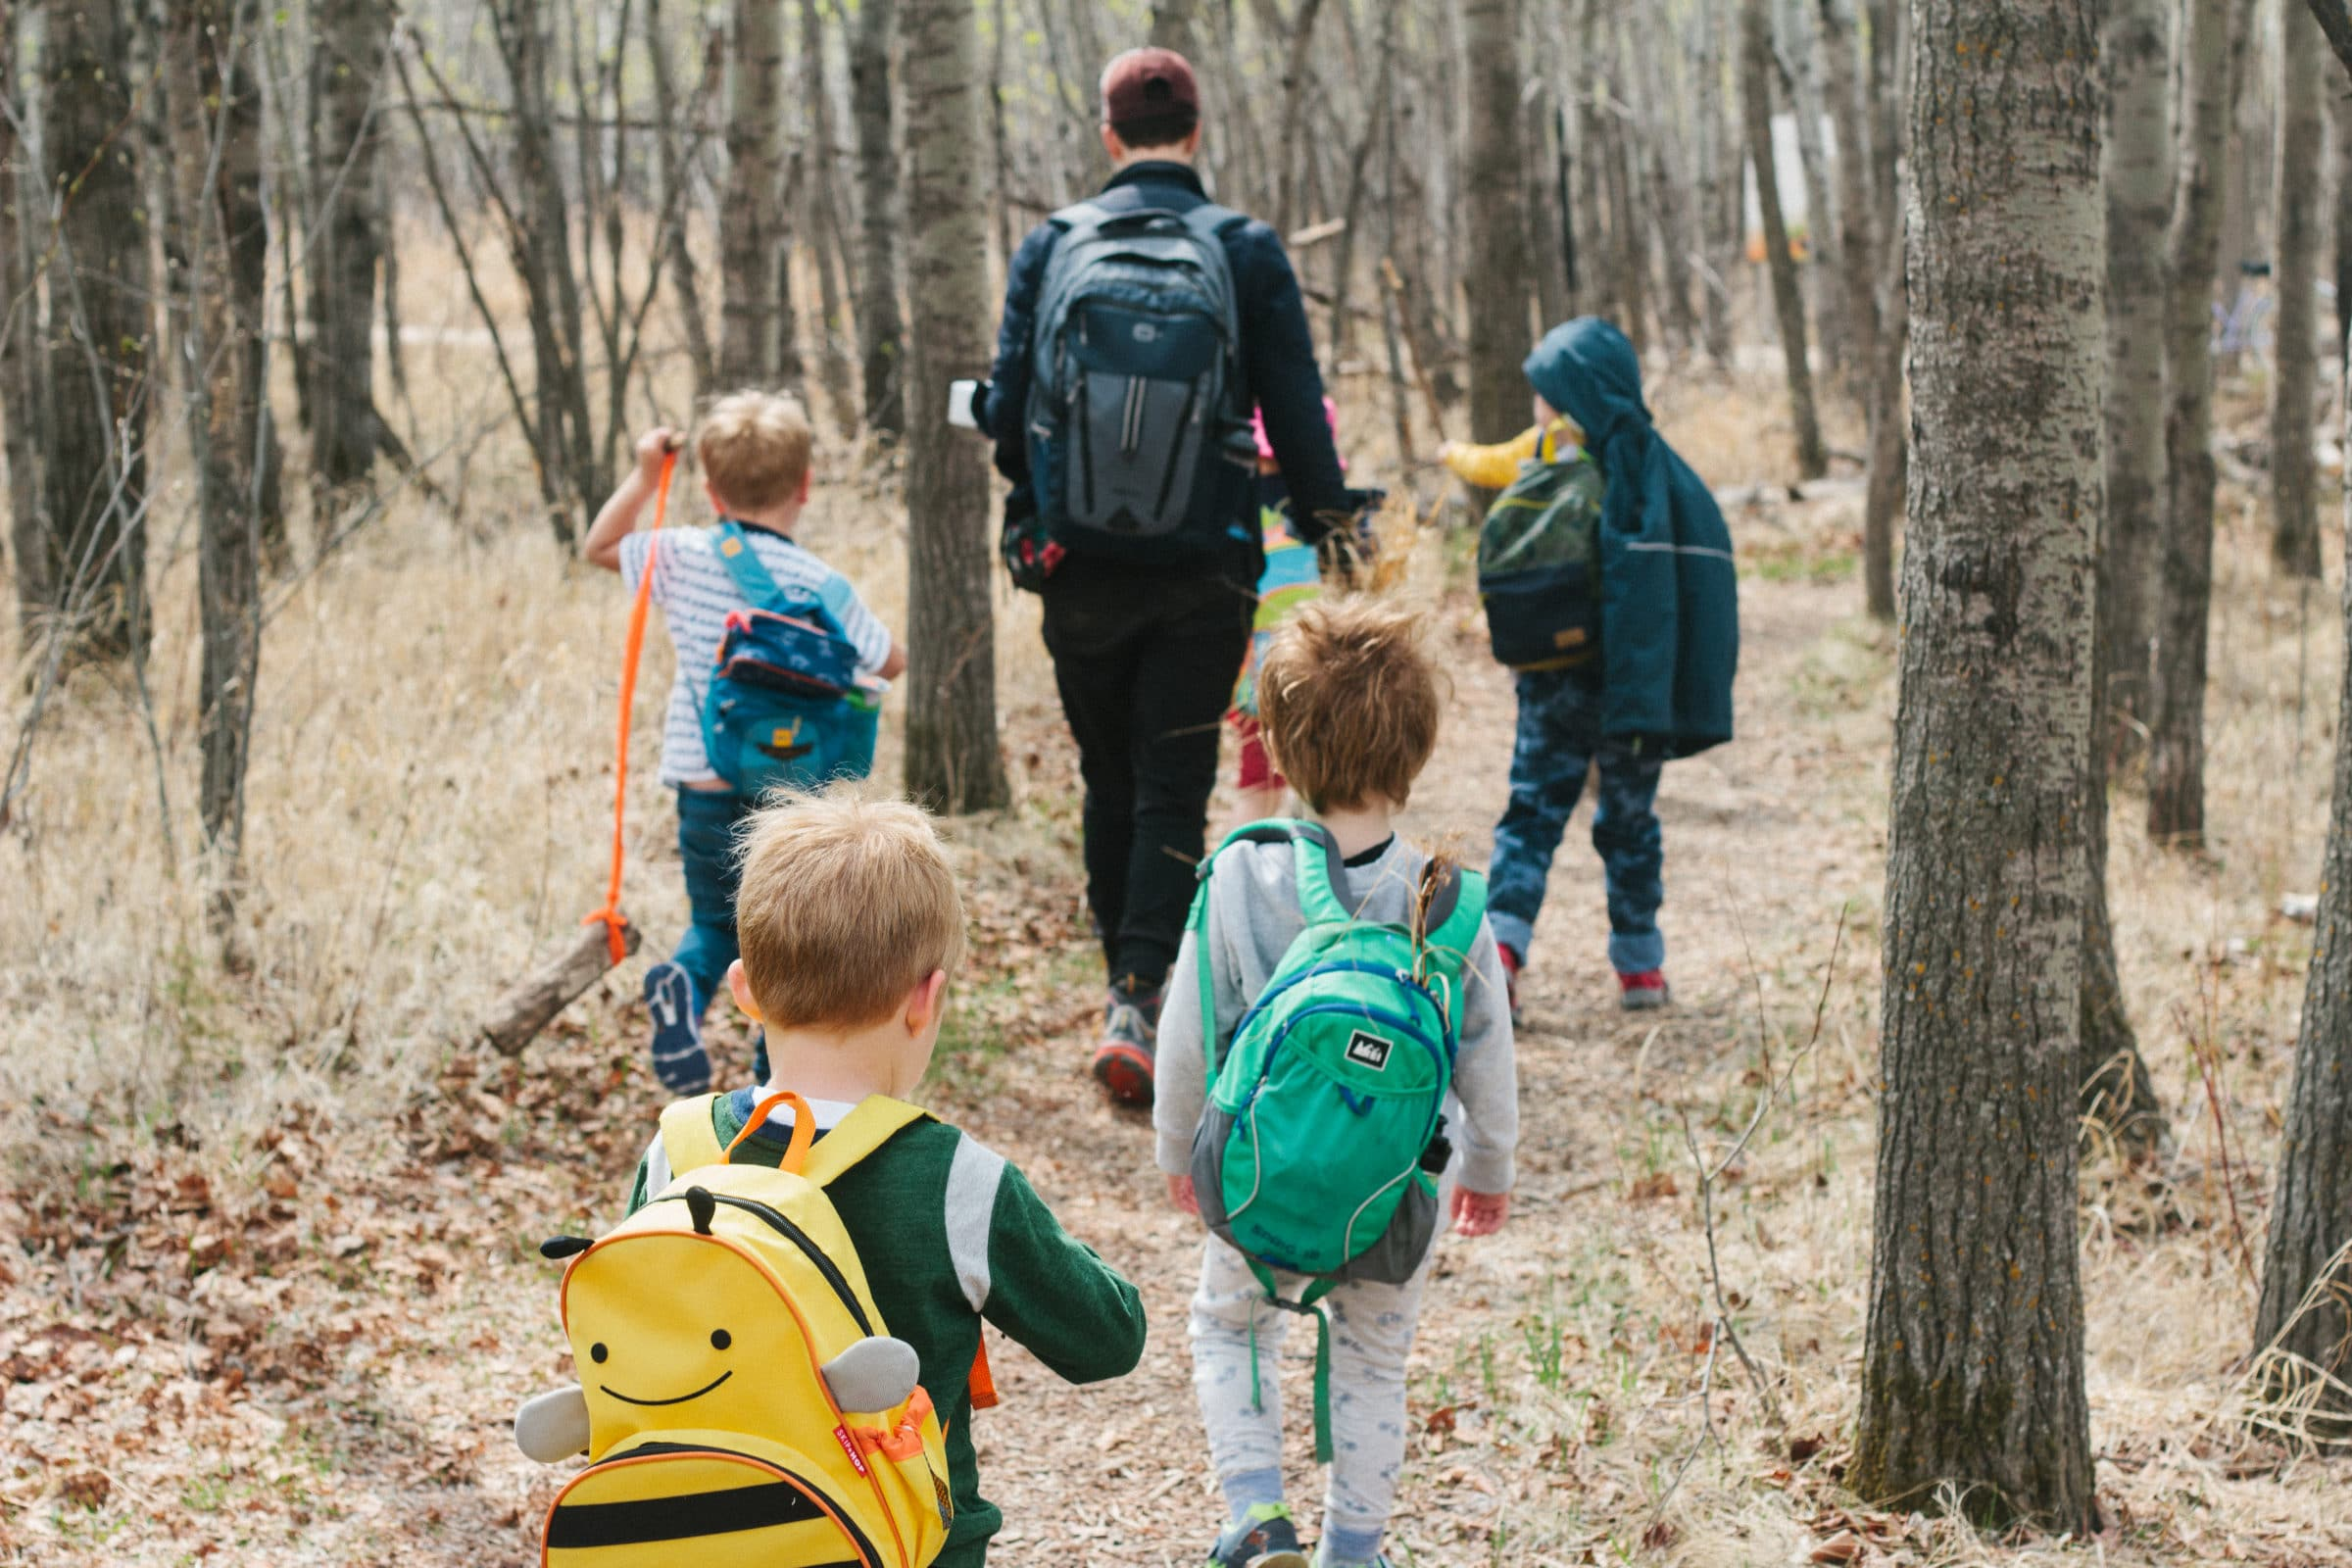 Group of children with backpacks walking through the forest.